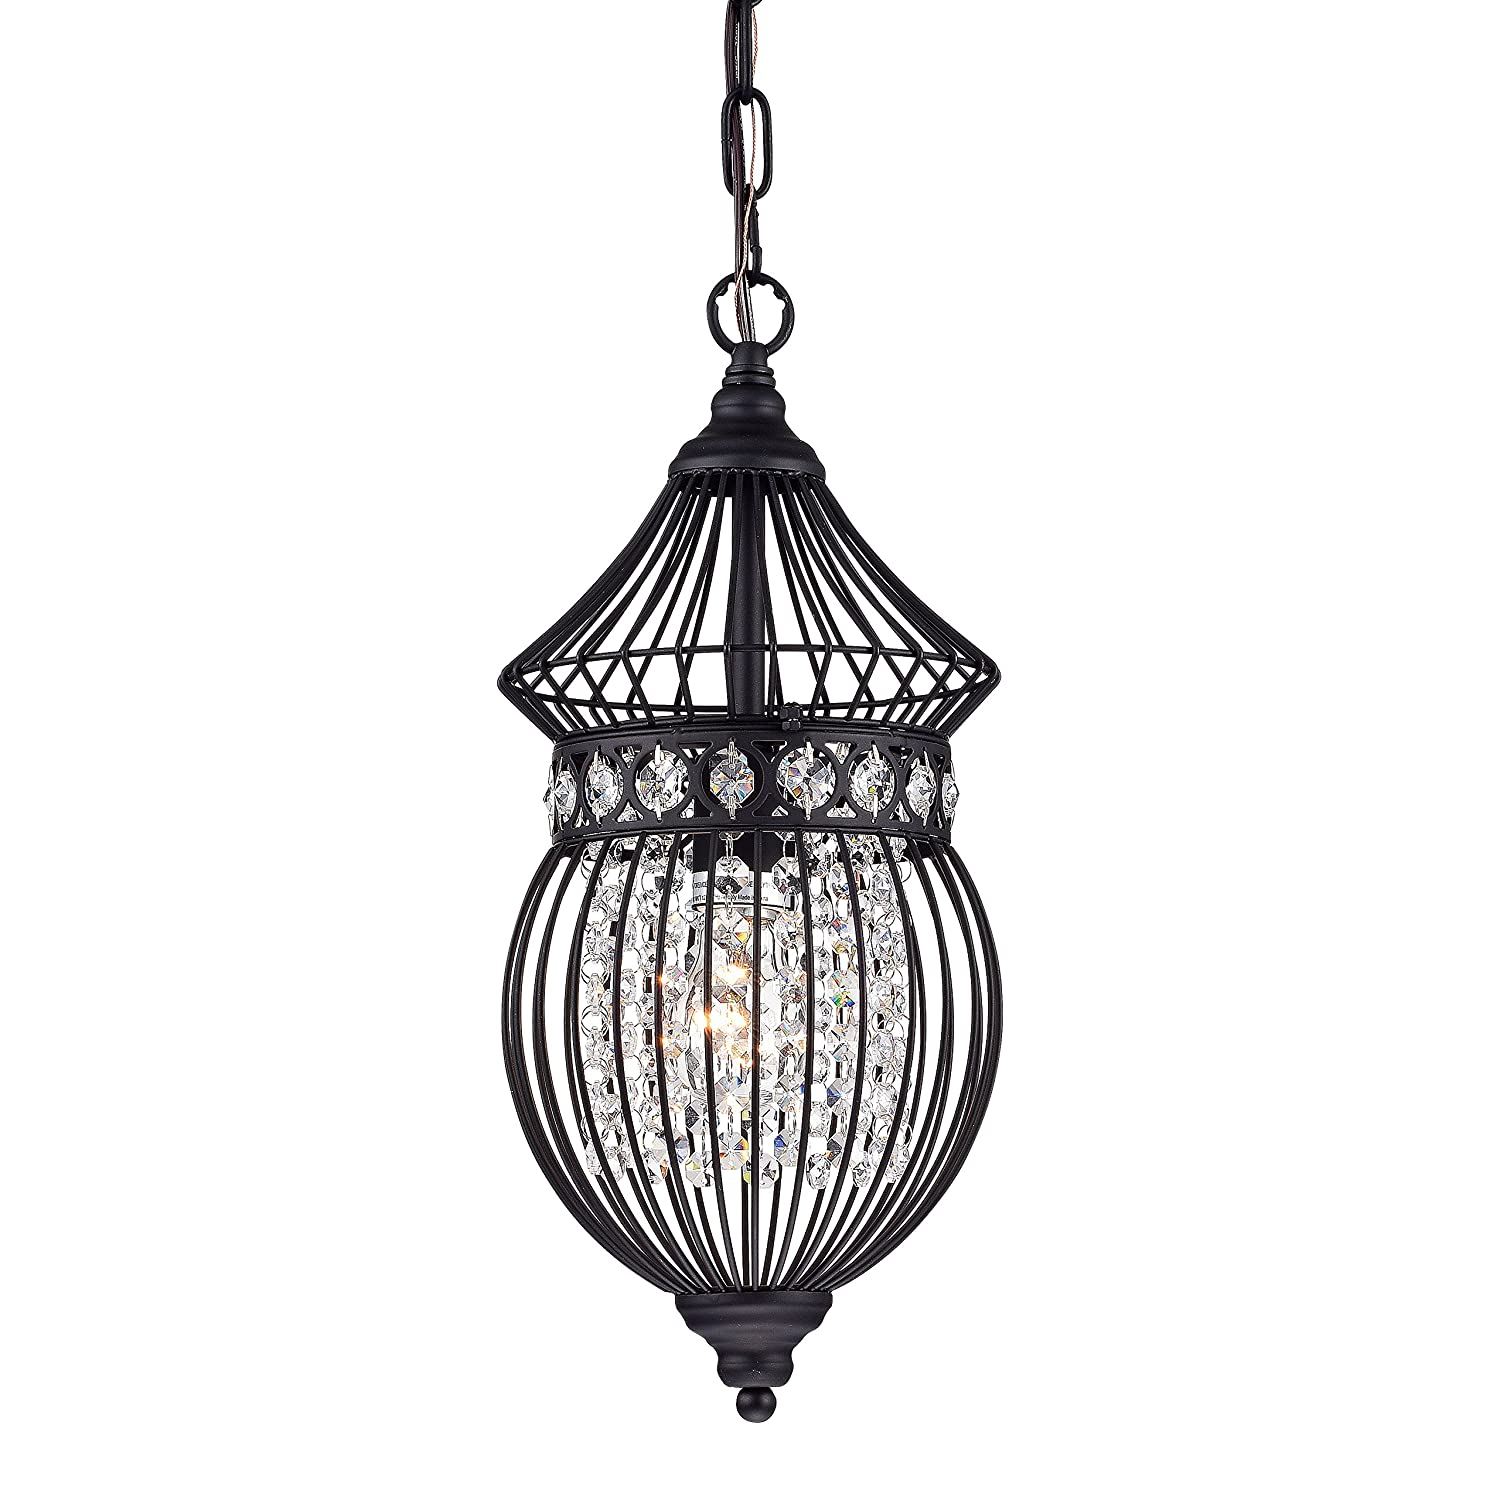 Black chandeliers crystal chandelier lighting farmhouse lighting fixtures 1 light 17045